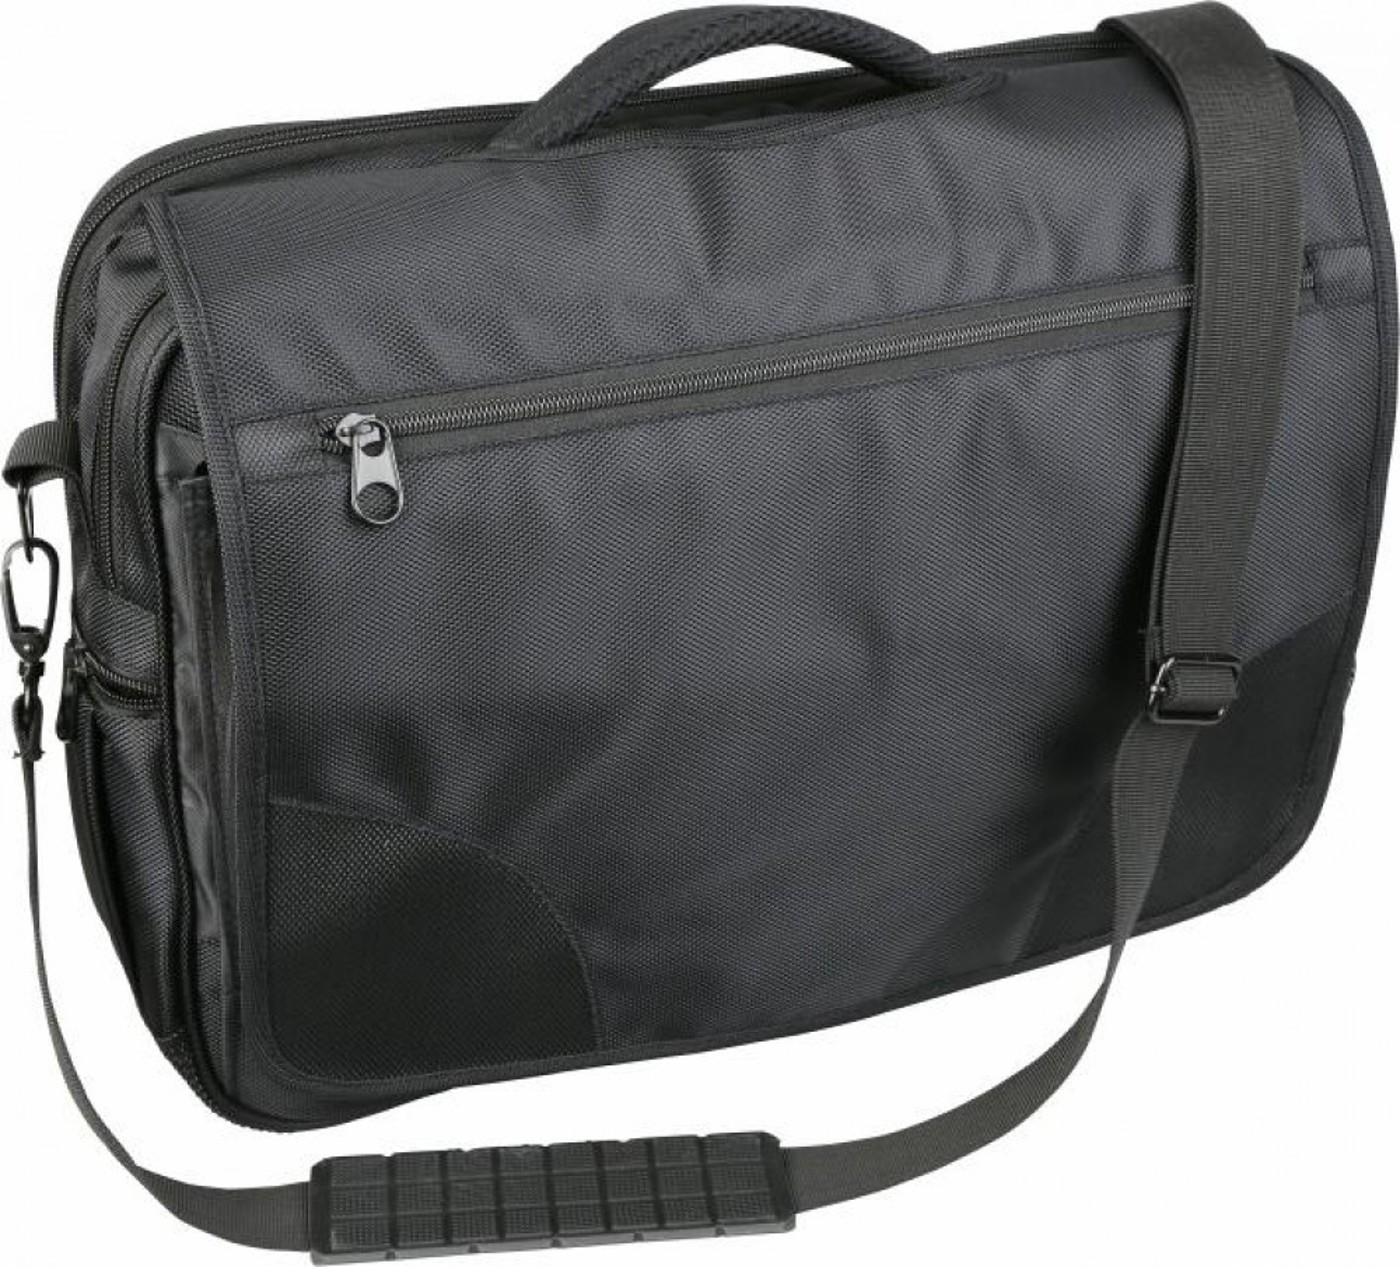 SPORT 2000 Laptoptasche MESSENGER